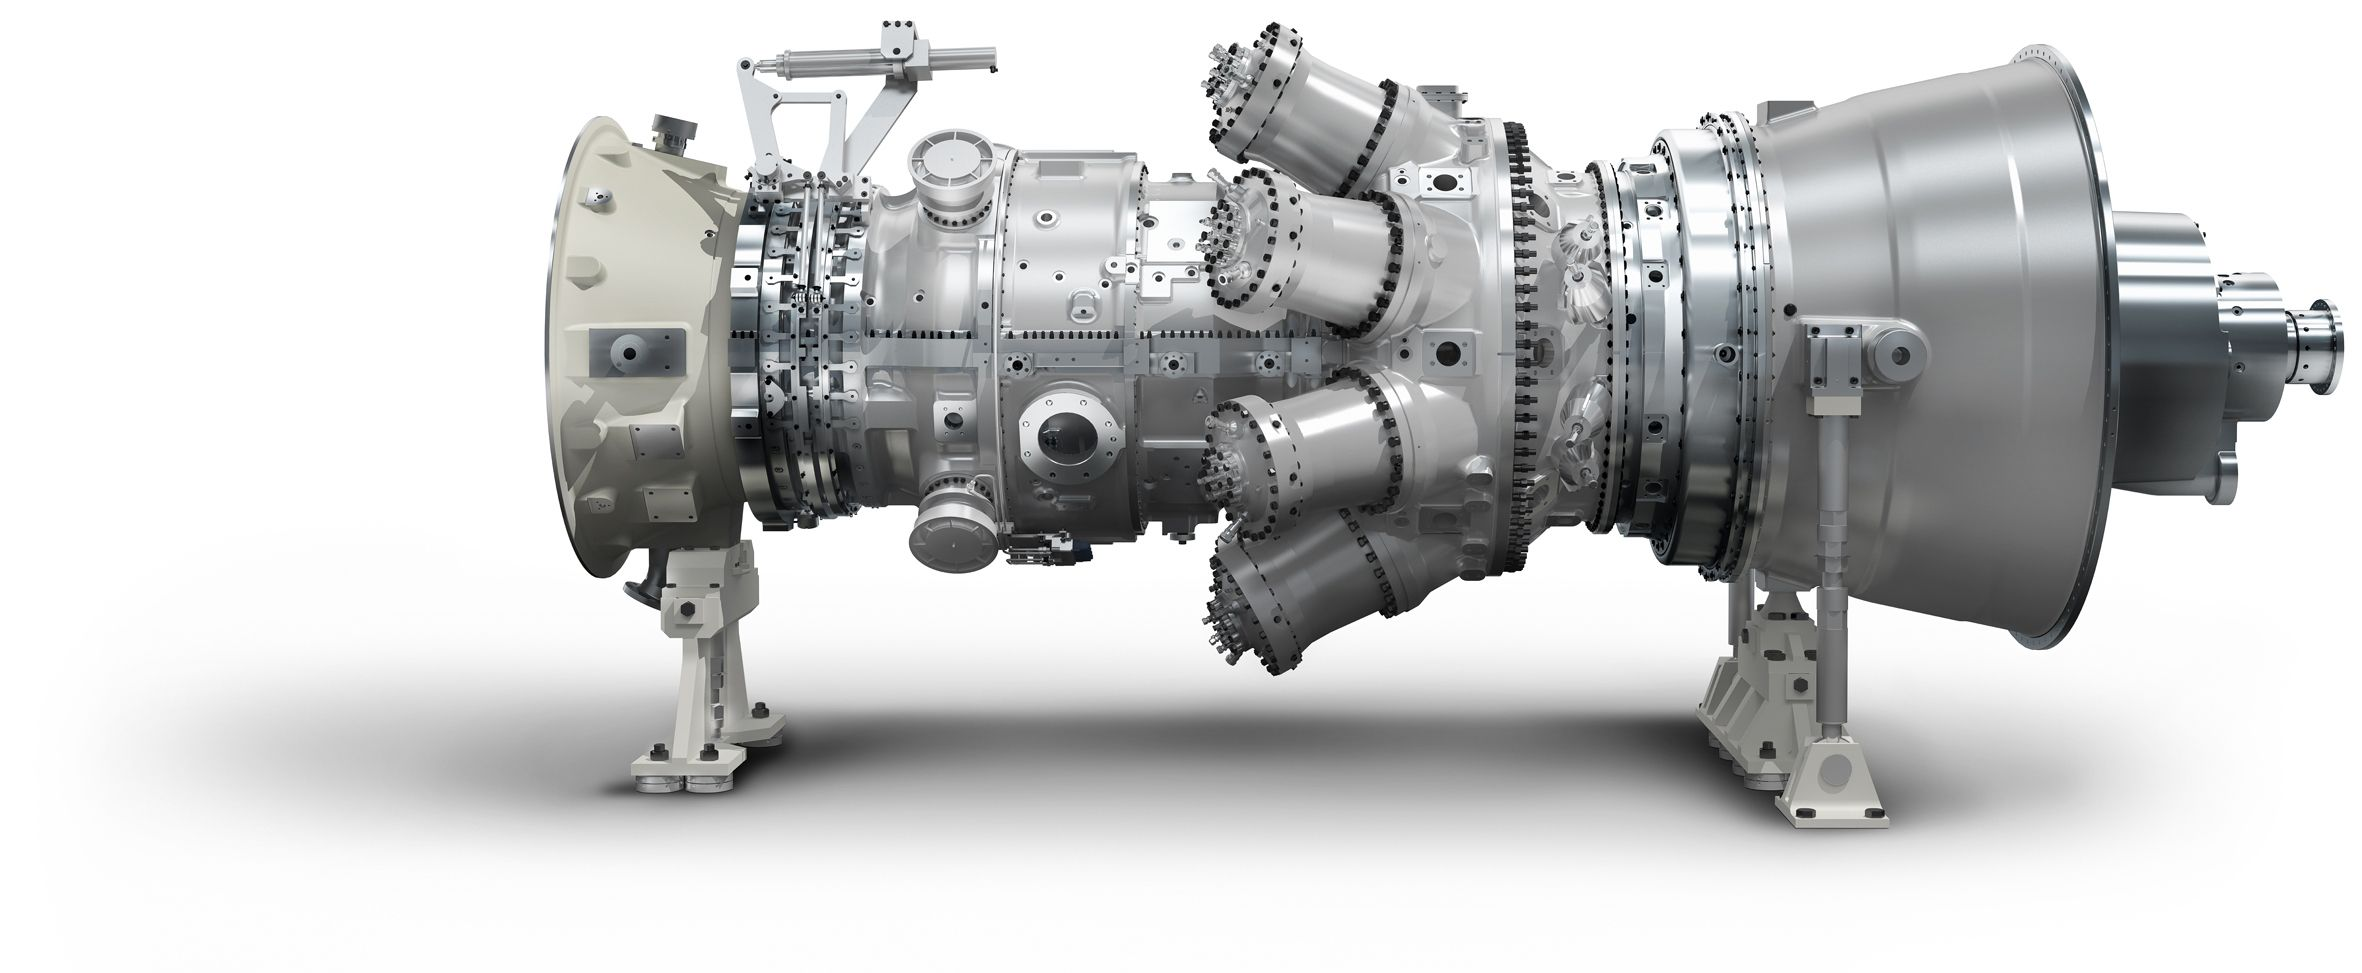 The Siemens SGT 750 is a low weight industrial gas turbine